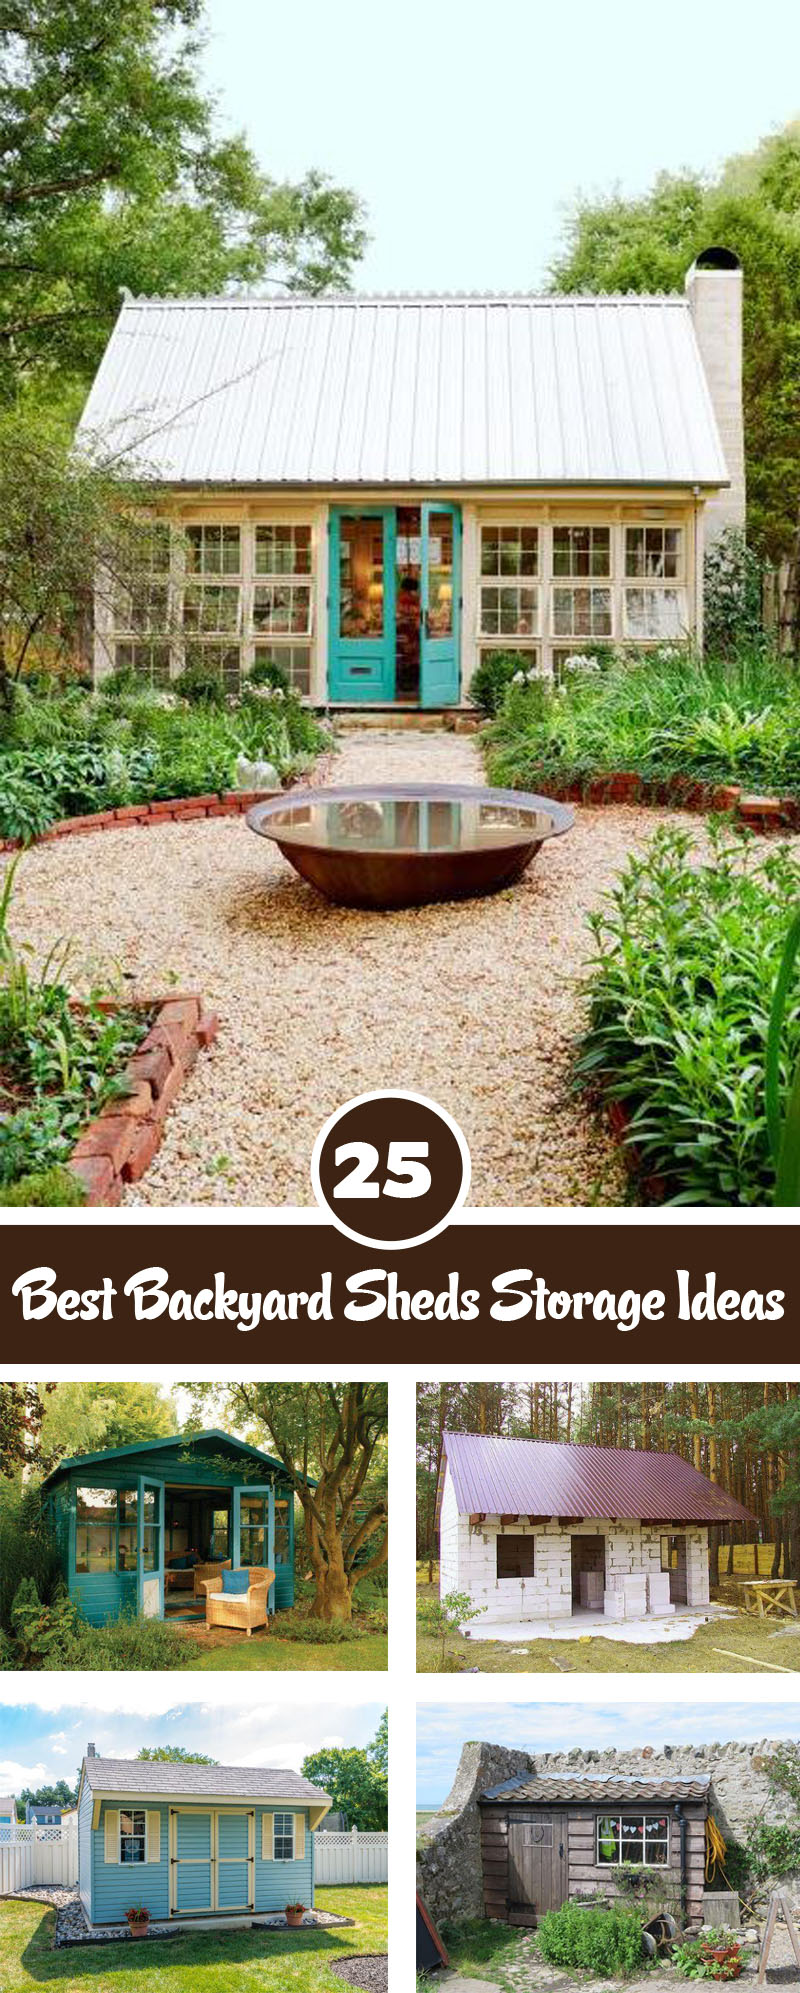 Best backyard Sheds storage ideas